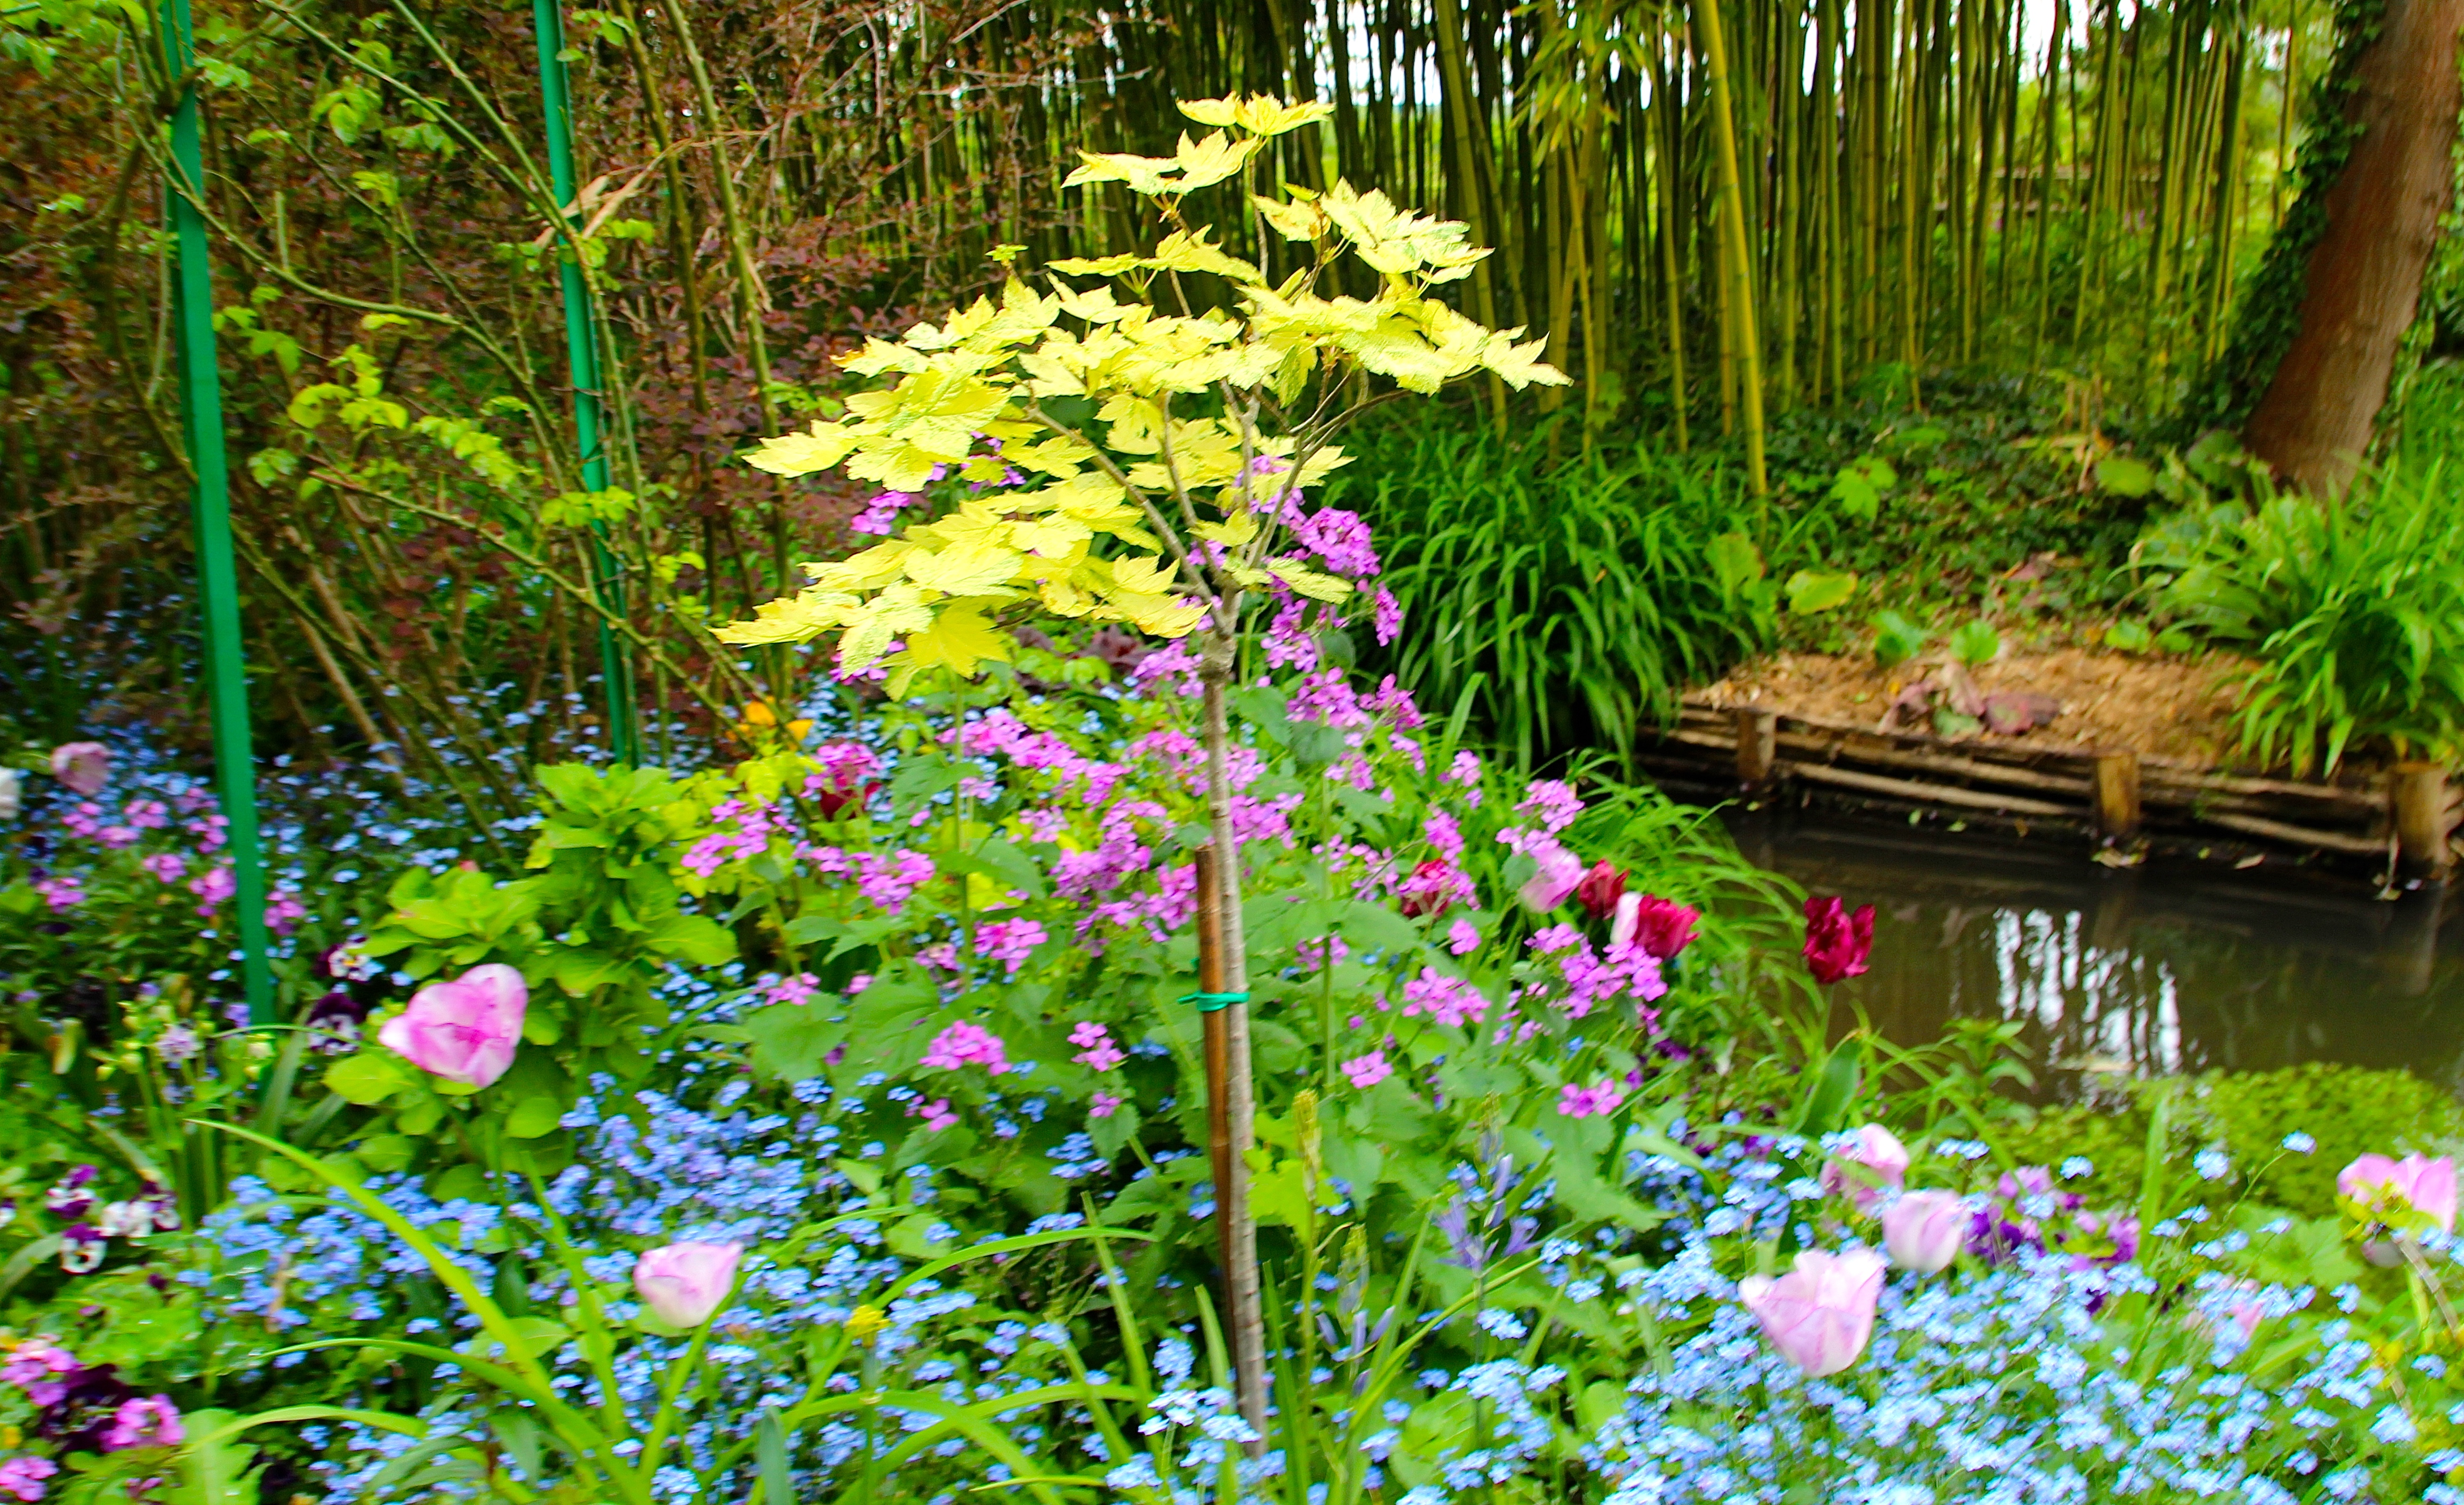 Spring flowers blooming at Giverny. France. 05.09.16. 13